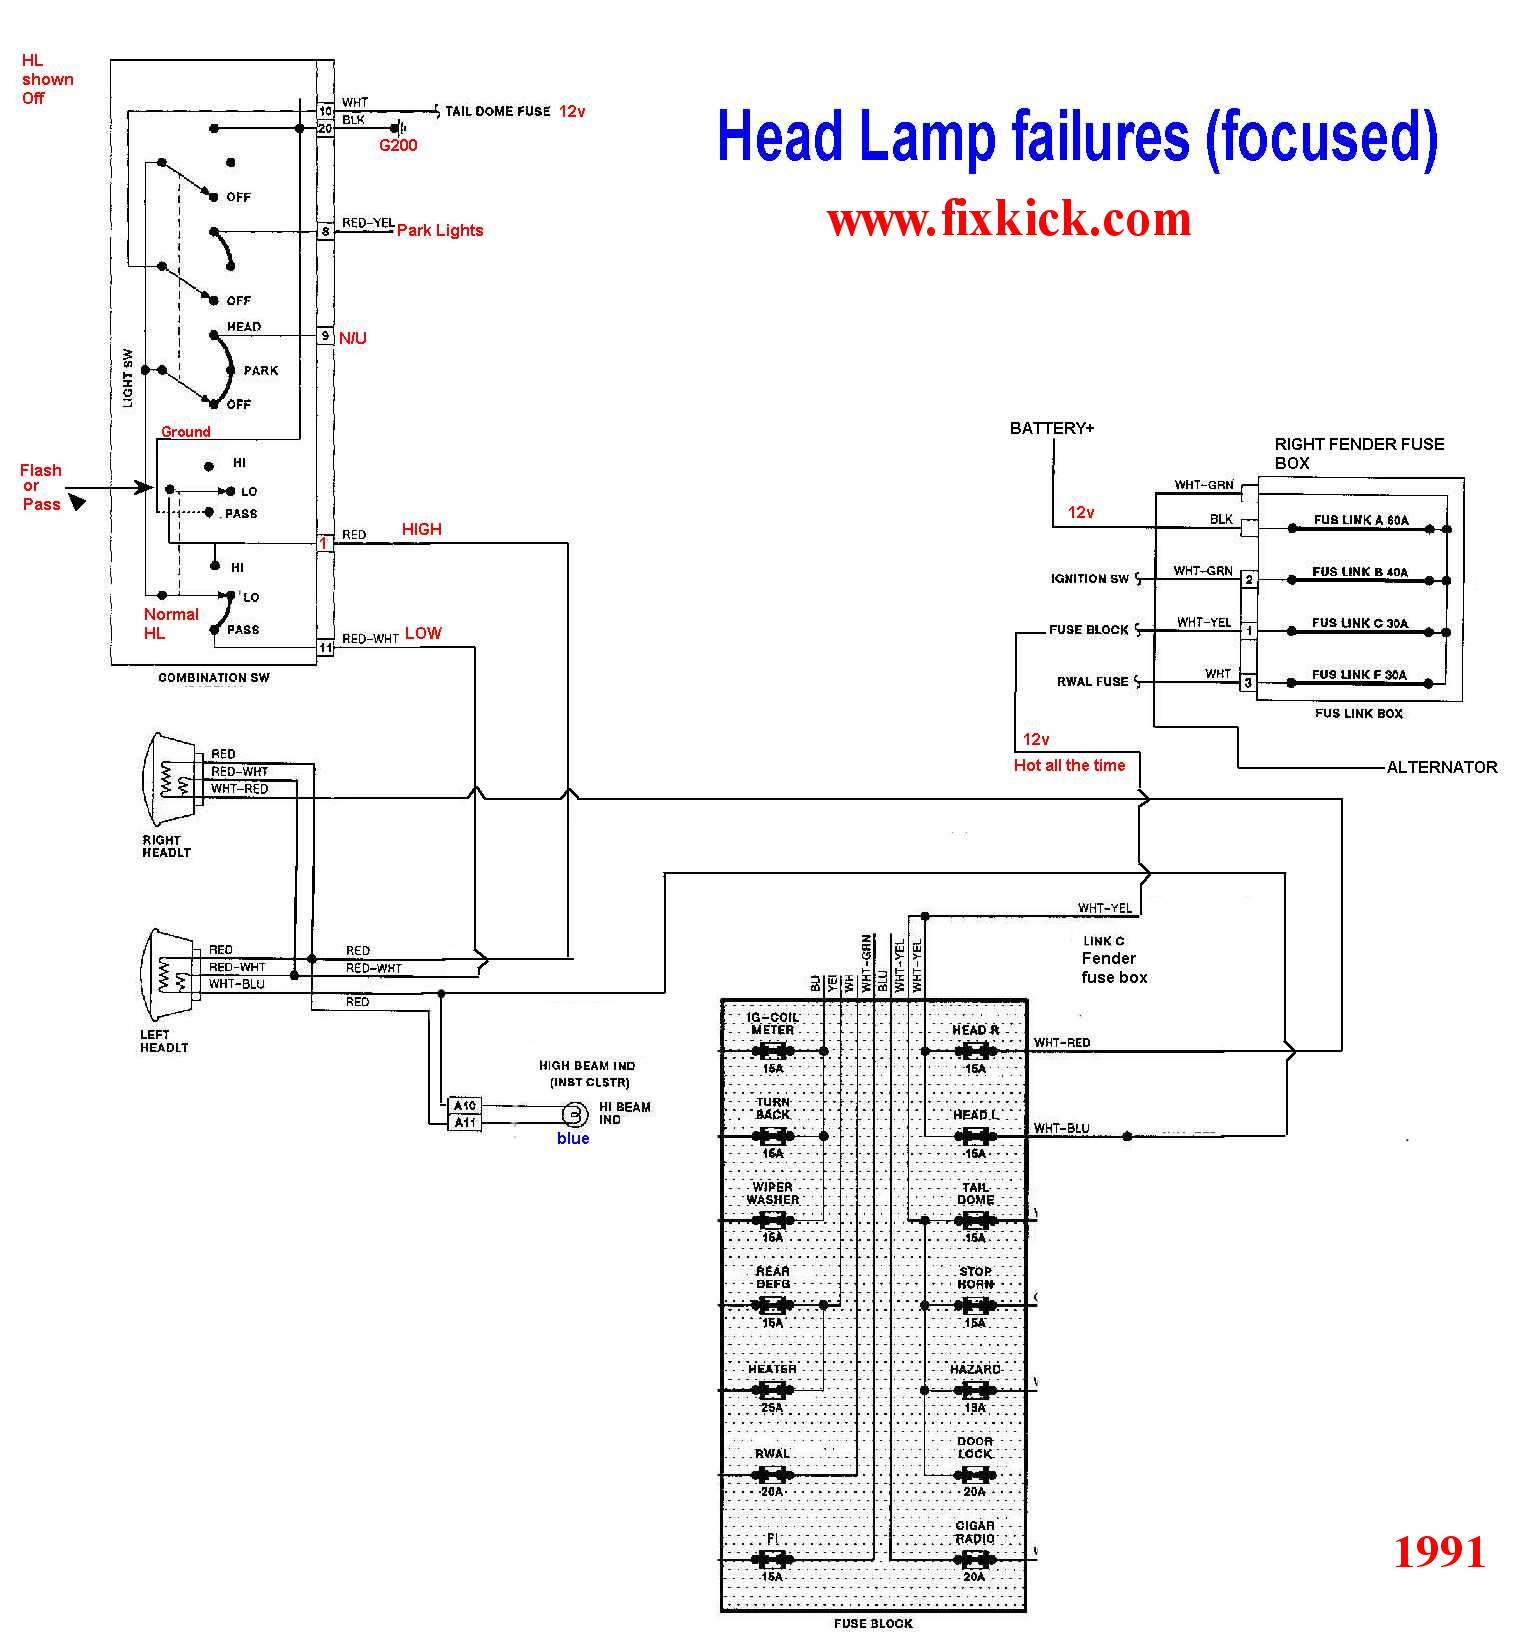 DIAGRAM] 91 Geo Tracker Wiring Diagram Light FULL Version HD Quality Diagram  Light - ASHBYEBOOKS.PHYSALISWEDDINGS.FRashbyebooks.physalisweddings.fr